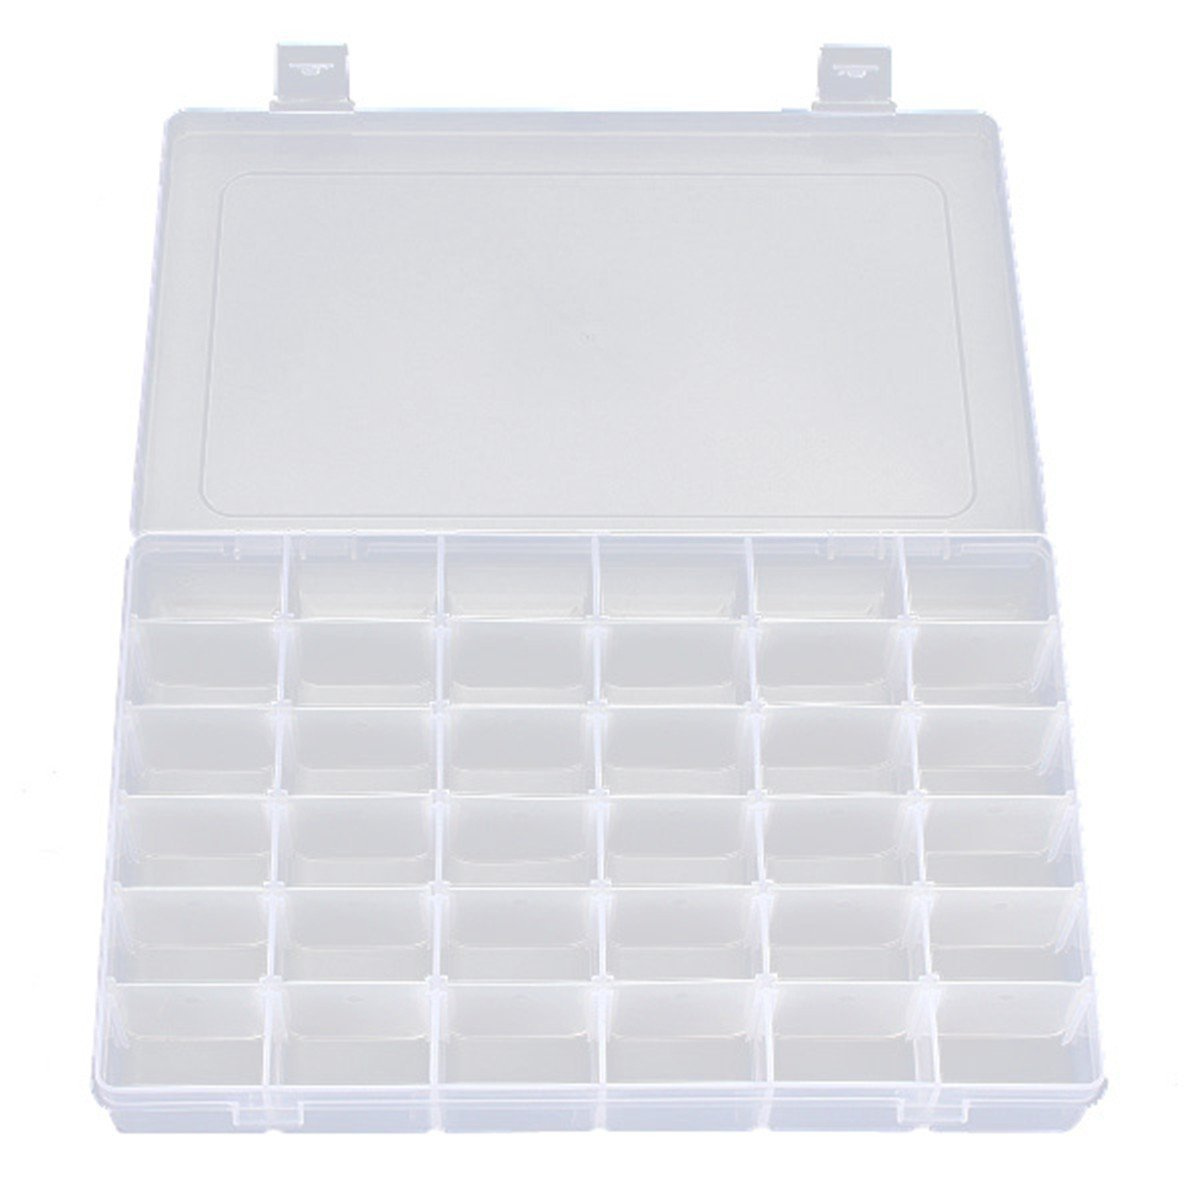 36 Grids Plastic Adjustable Earrings Jewelry Bead Box Holder Organizer Storage Container Case,Clear lasenersm